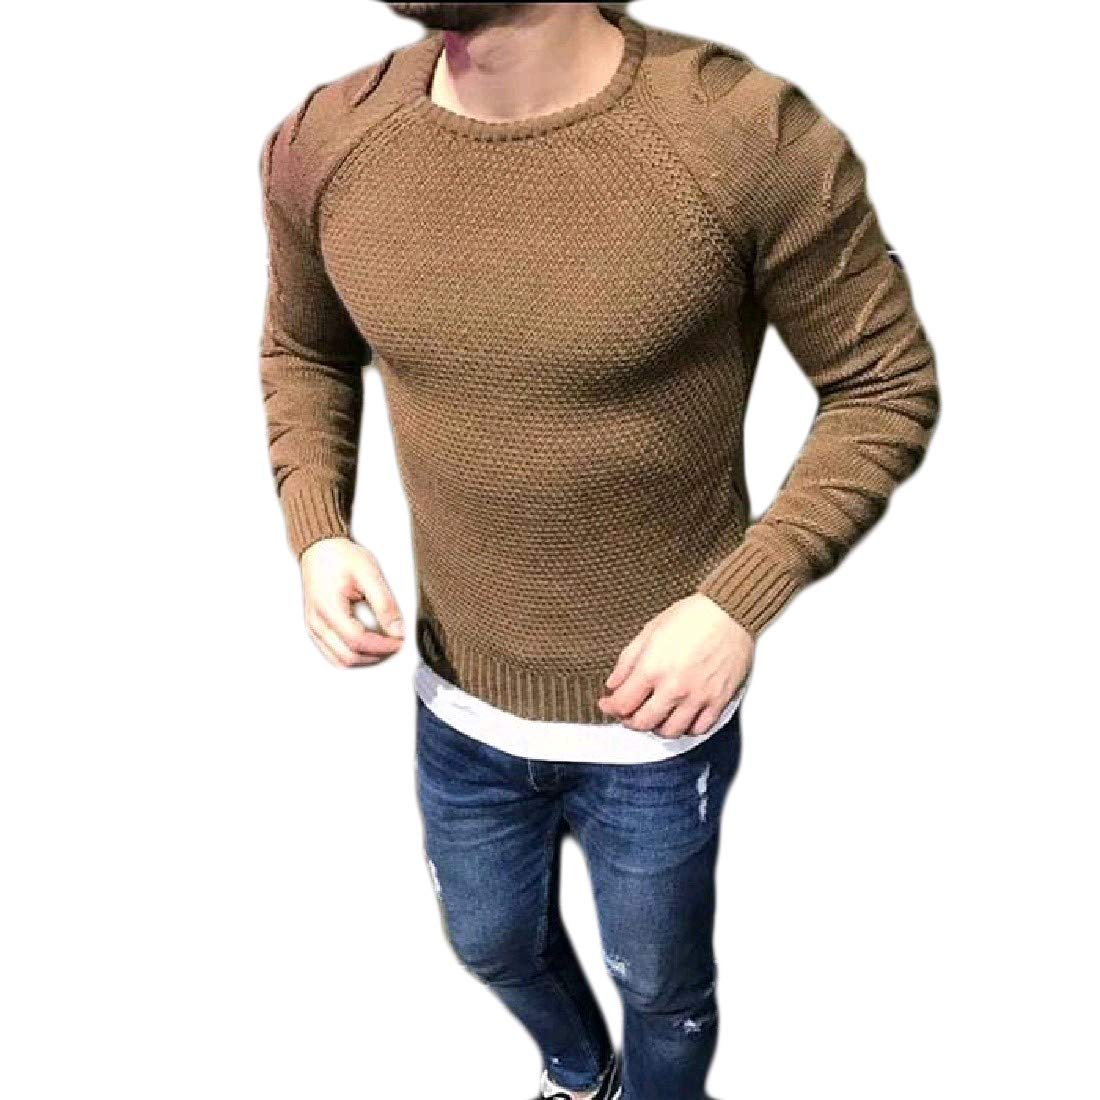 YUNY Mens Fashion Silm Fit Plus Size Knitting Top Tee Sweater Khaki L